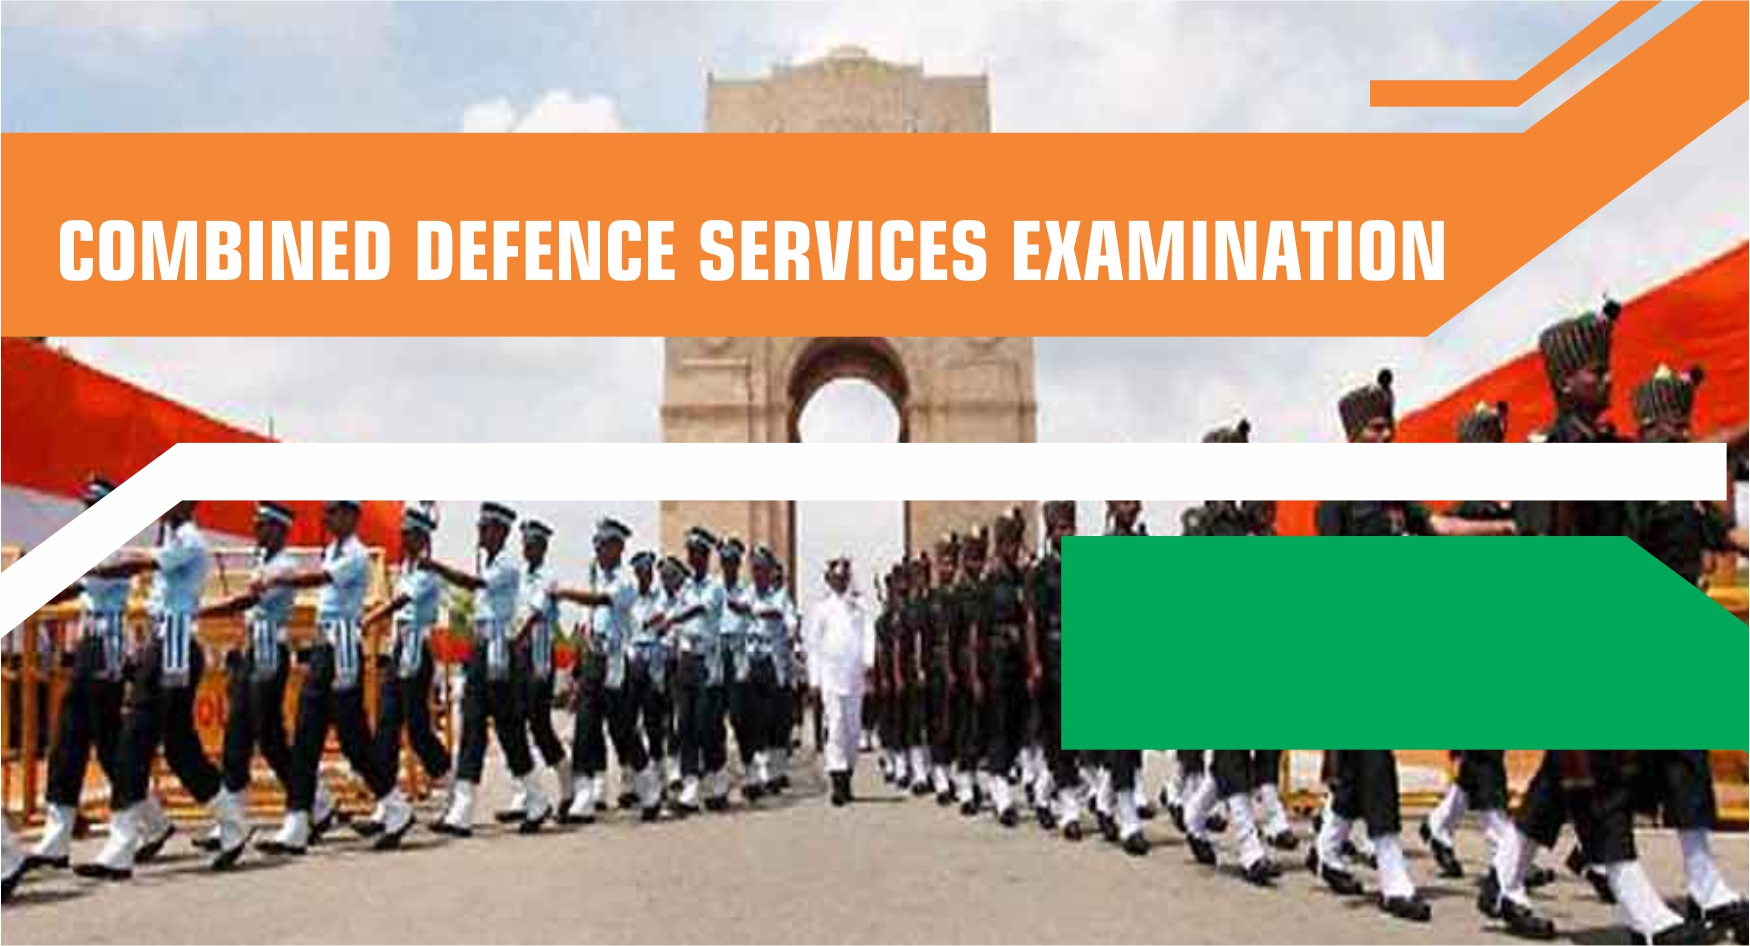 Exams under UPSC - Combined Defence Services Examination